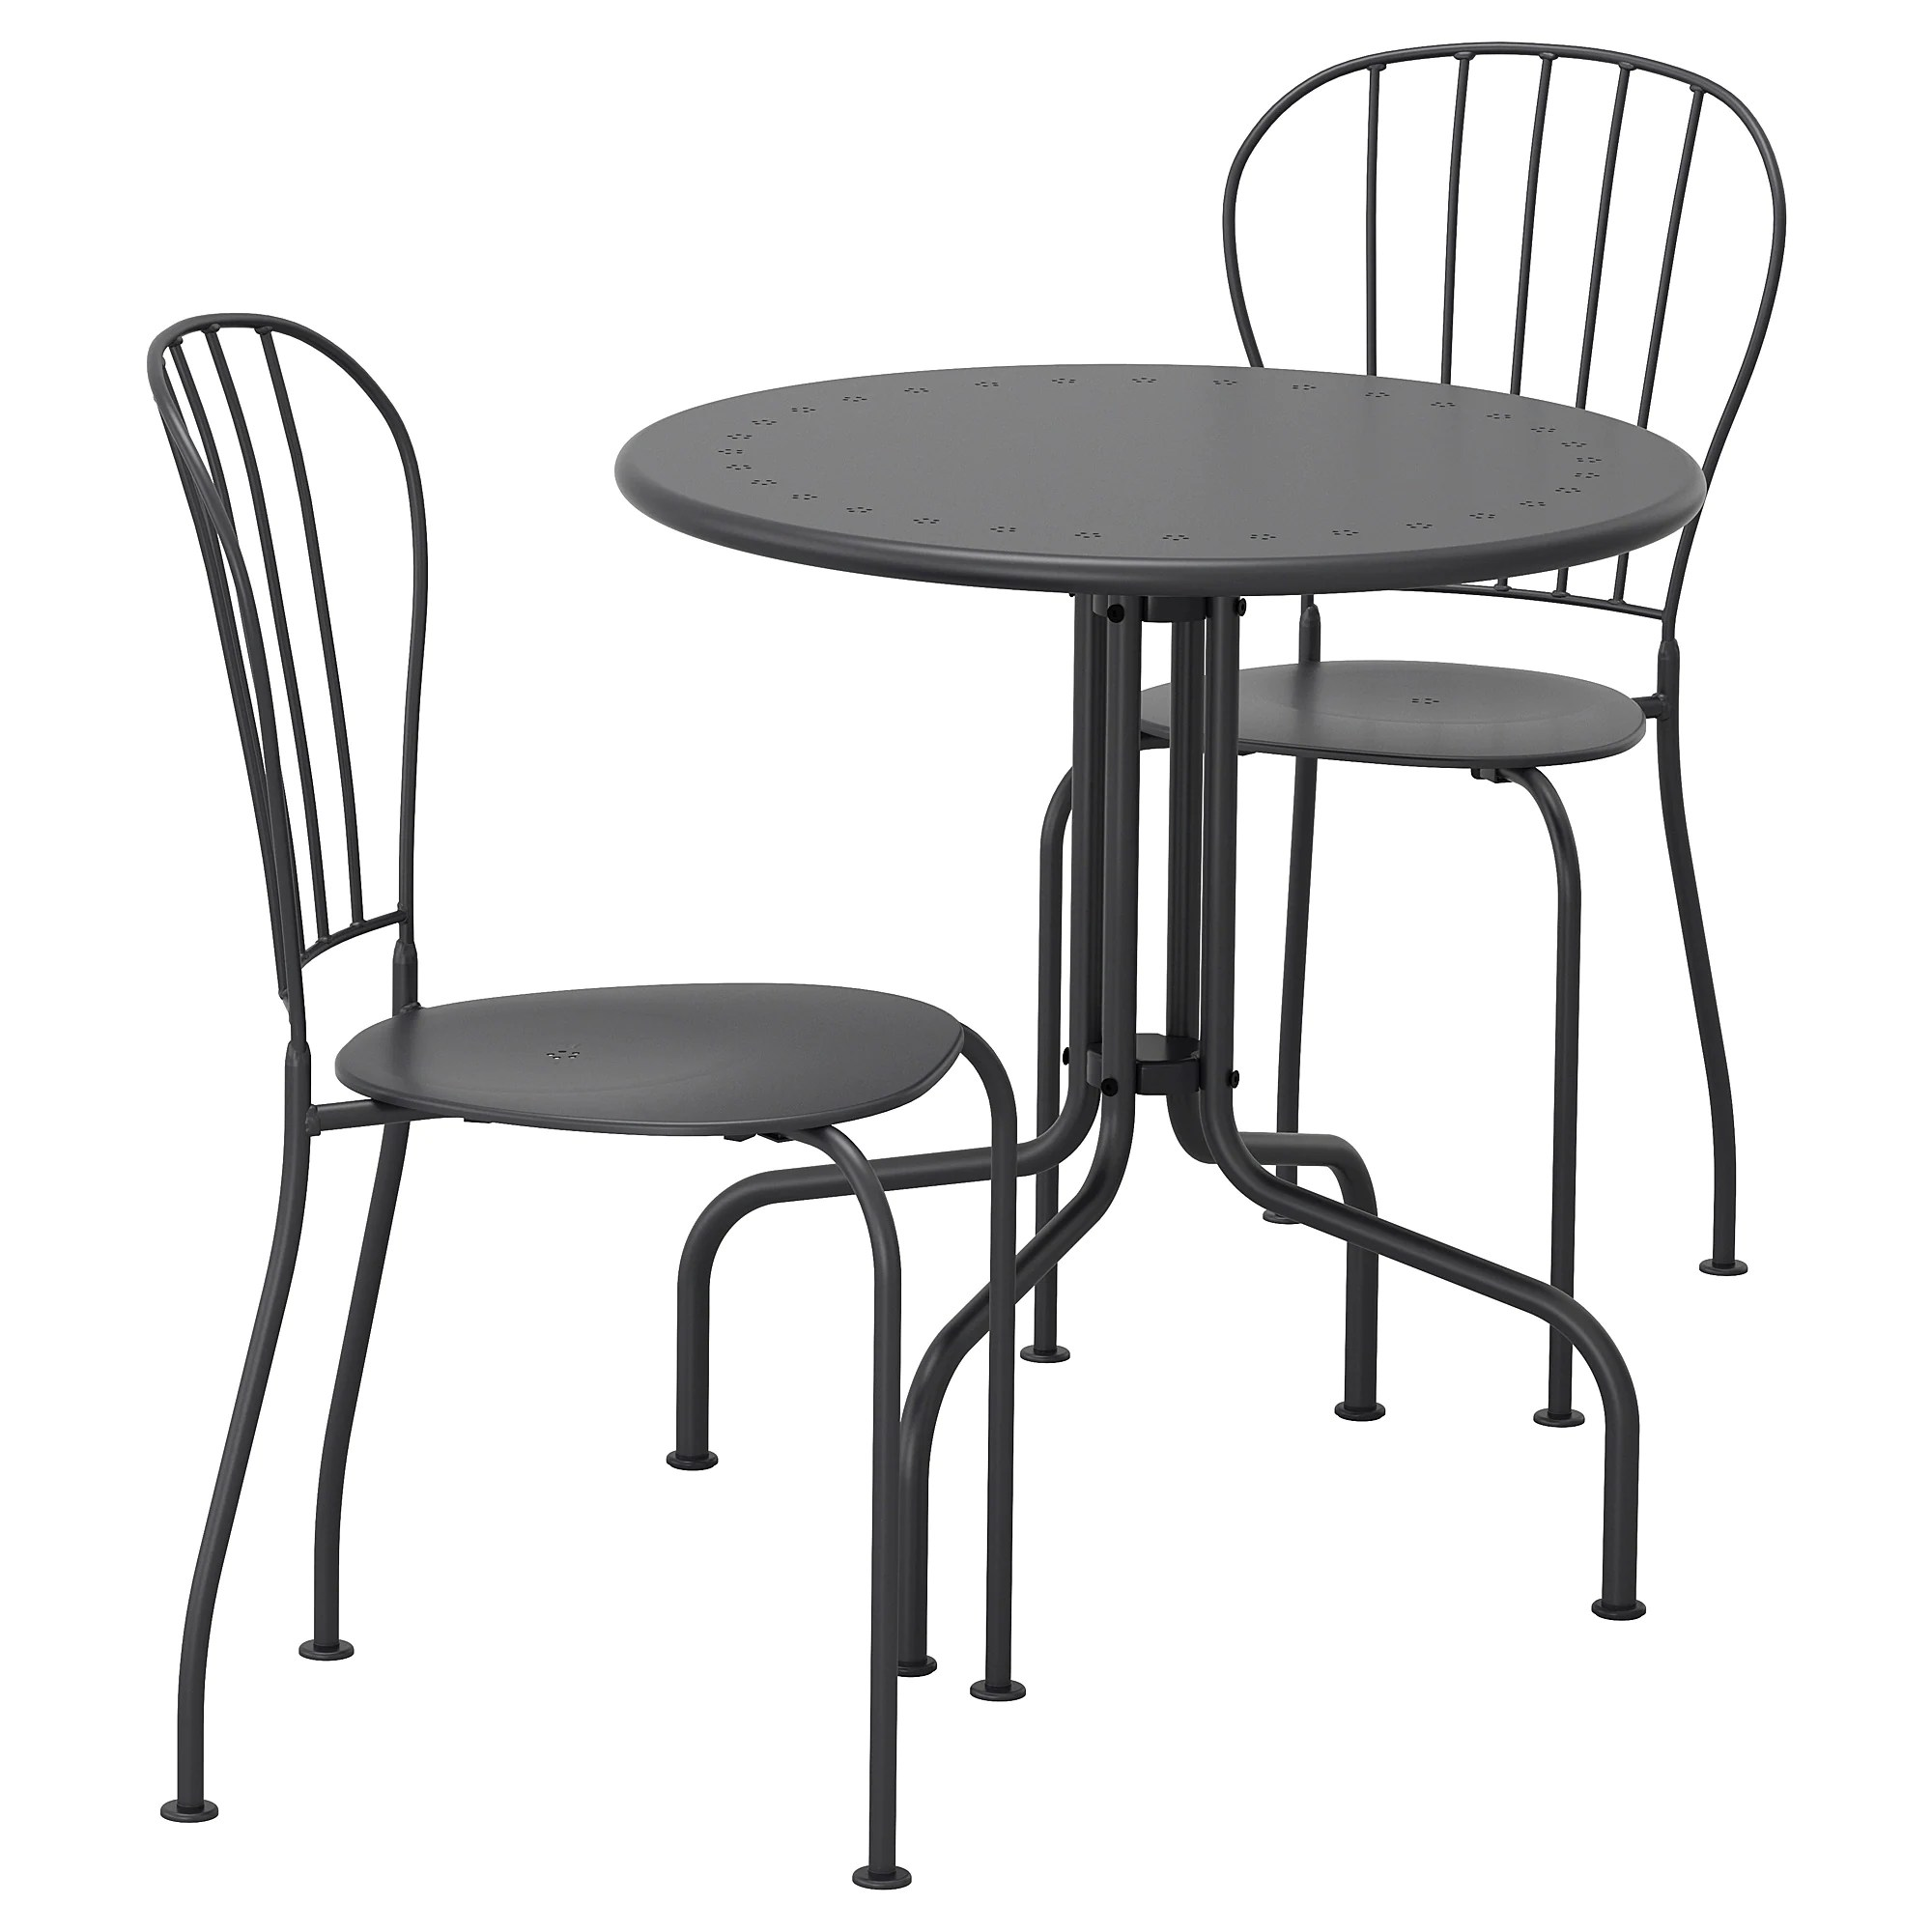 Outdoor Table And Chair Set LÄckÖ Table 2 Chairs Outdoor Gray